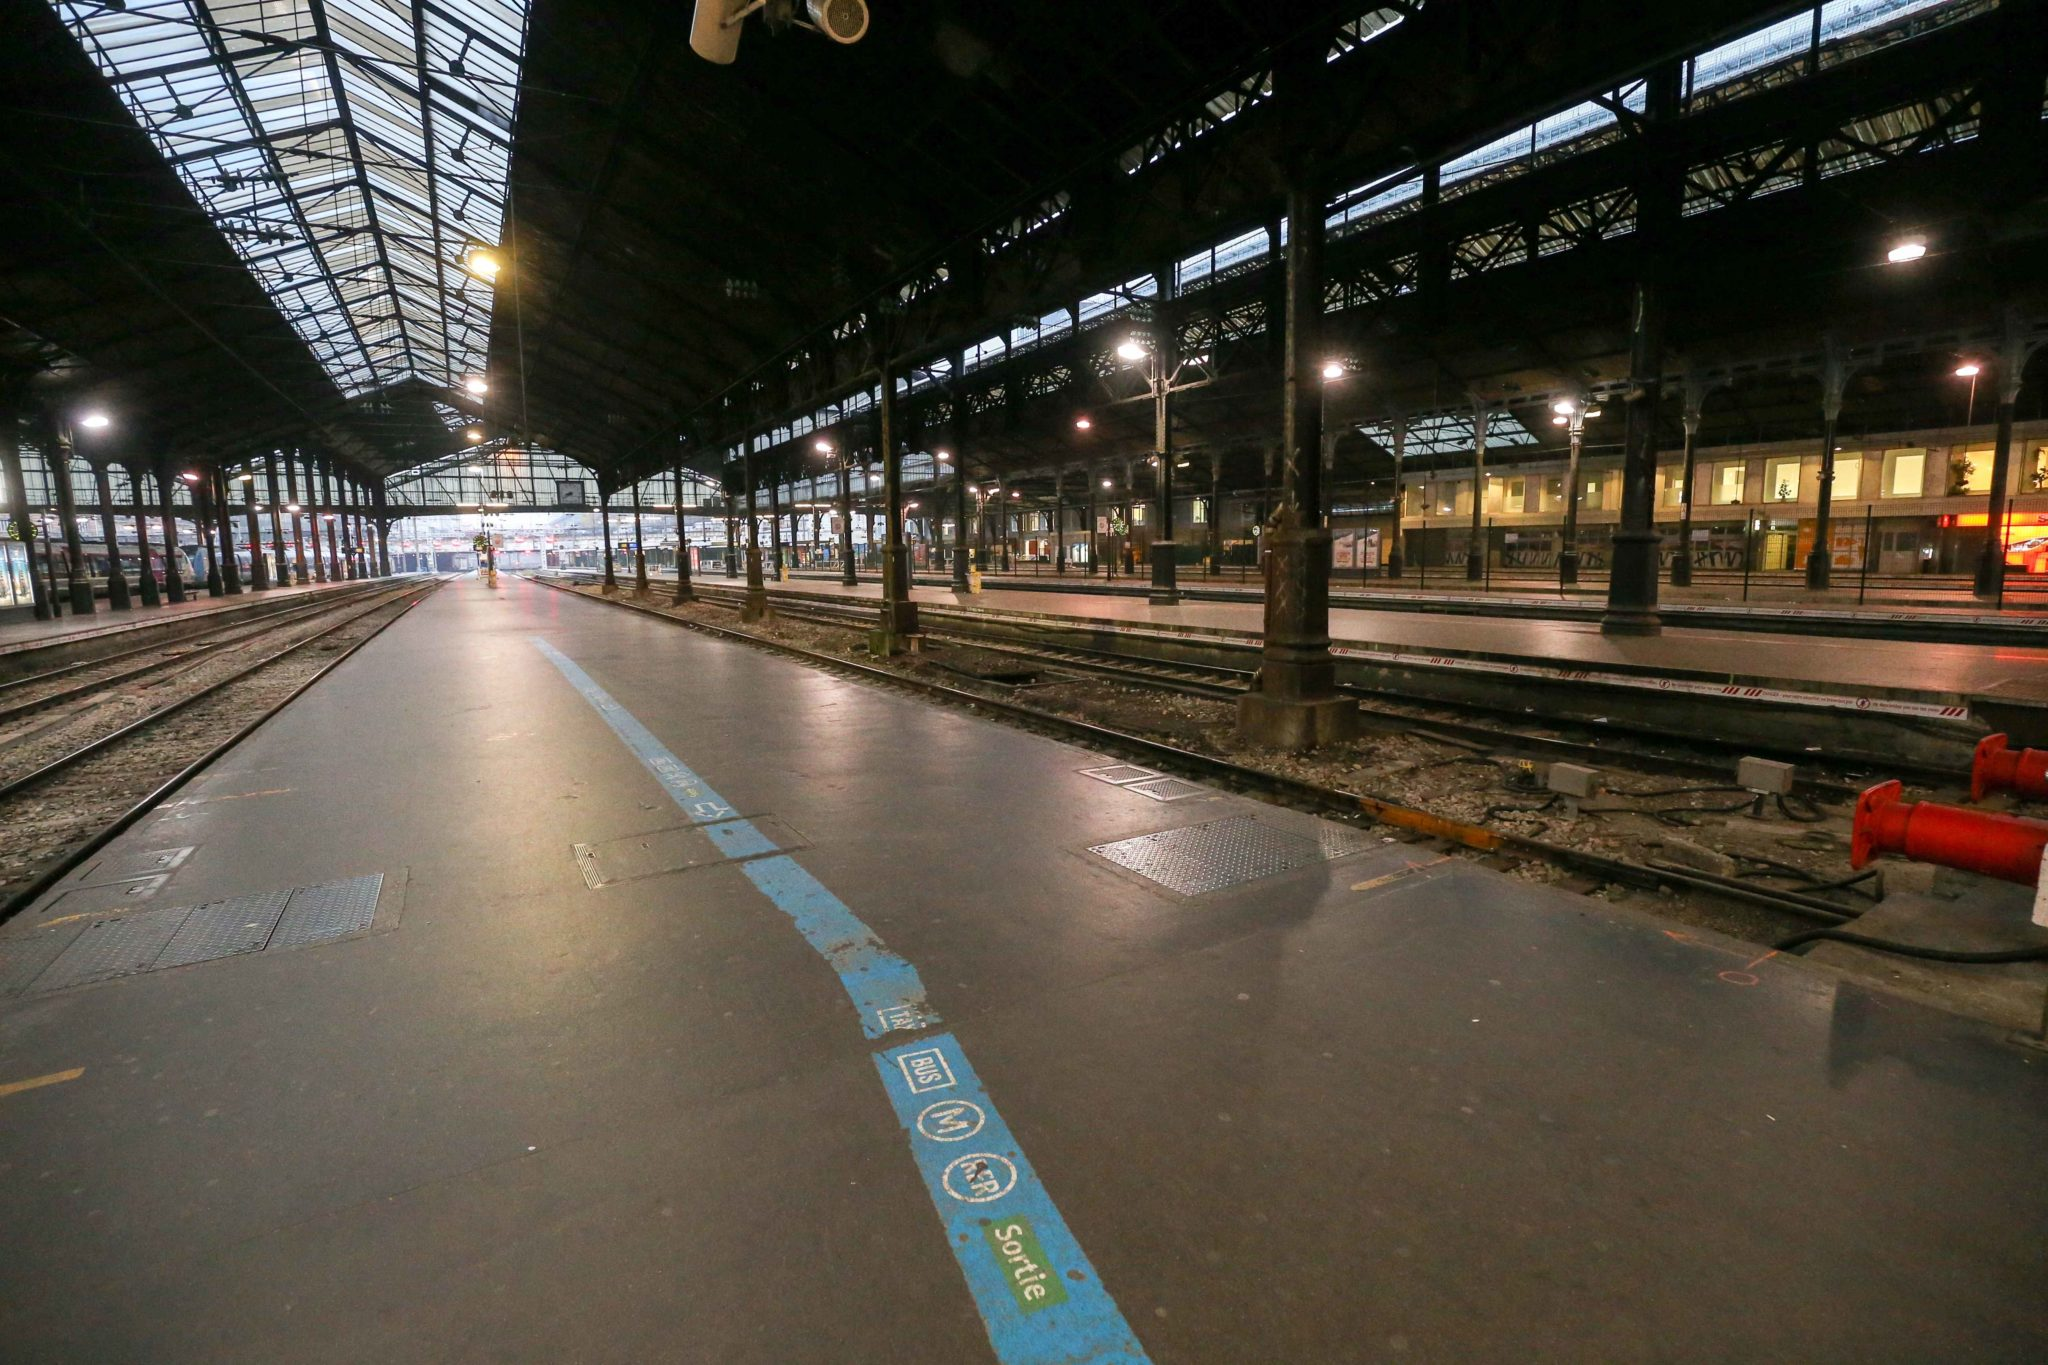 Paris Gare Saint-Lazare is seen without passengers during a strike of Paris public transports operator RATP and public railways company SNCF employees against French government's plan to overhaul the country's retirement system, as part of a national gener